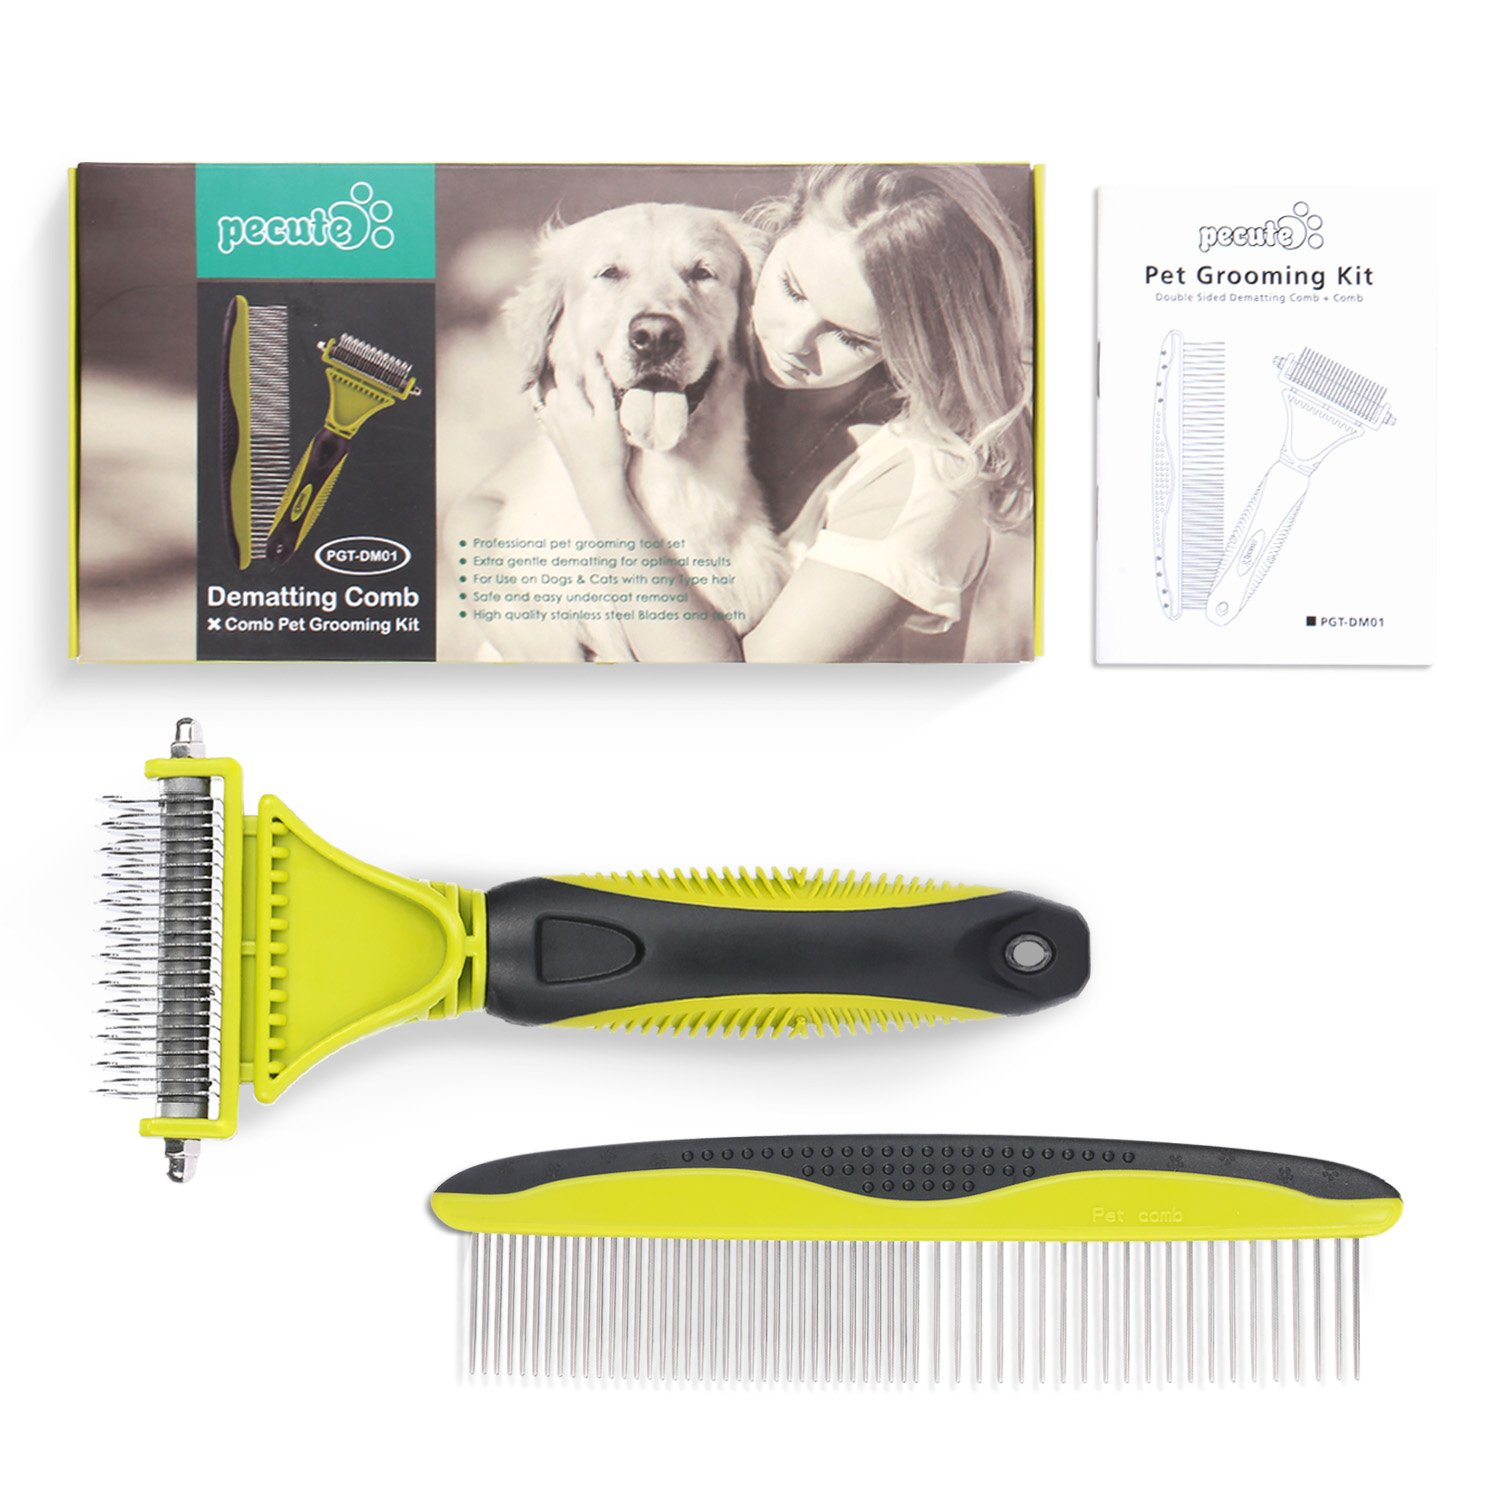 Cat Shedding Brush with Self Cleaning Button for Cat Puppy Rabbit, Remove Dead Hair and Undercoat, Effectively Reduce Shedding up to 95% for Long & Short Hair (76 mm) Pecute